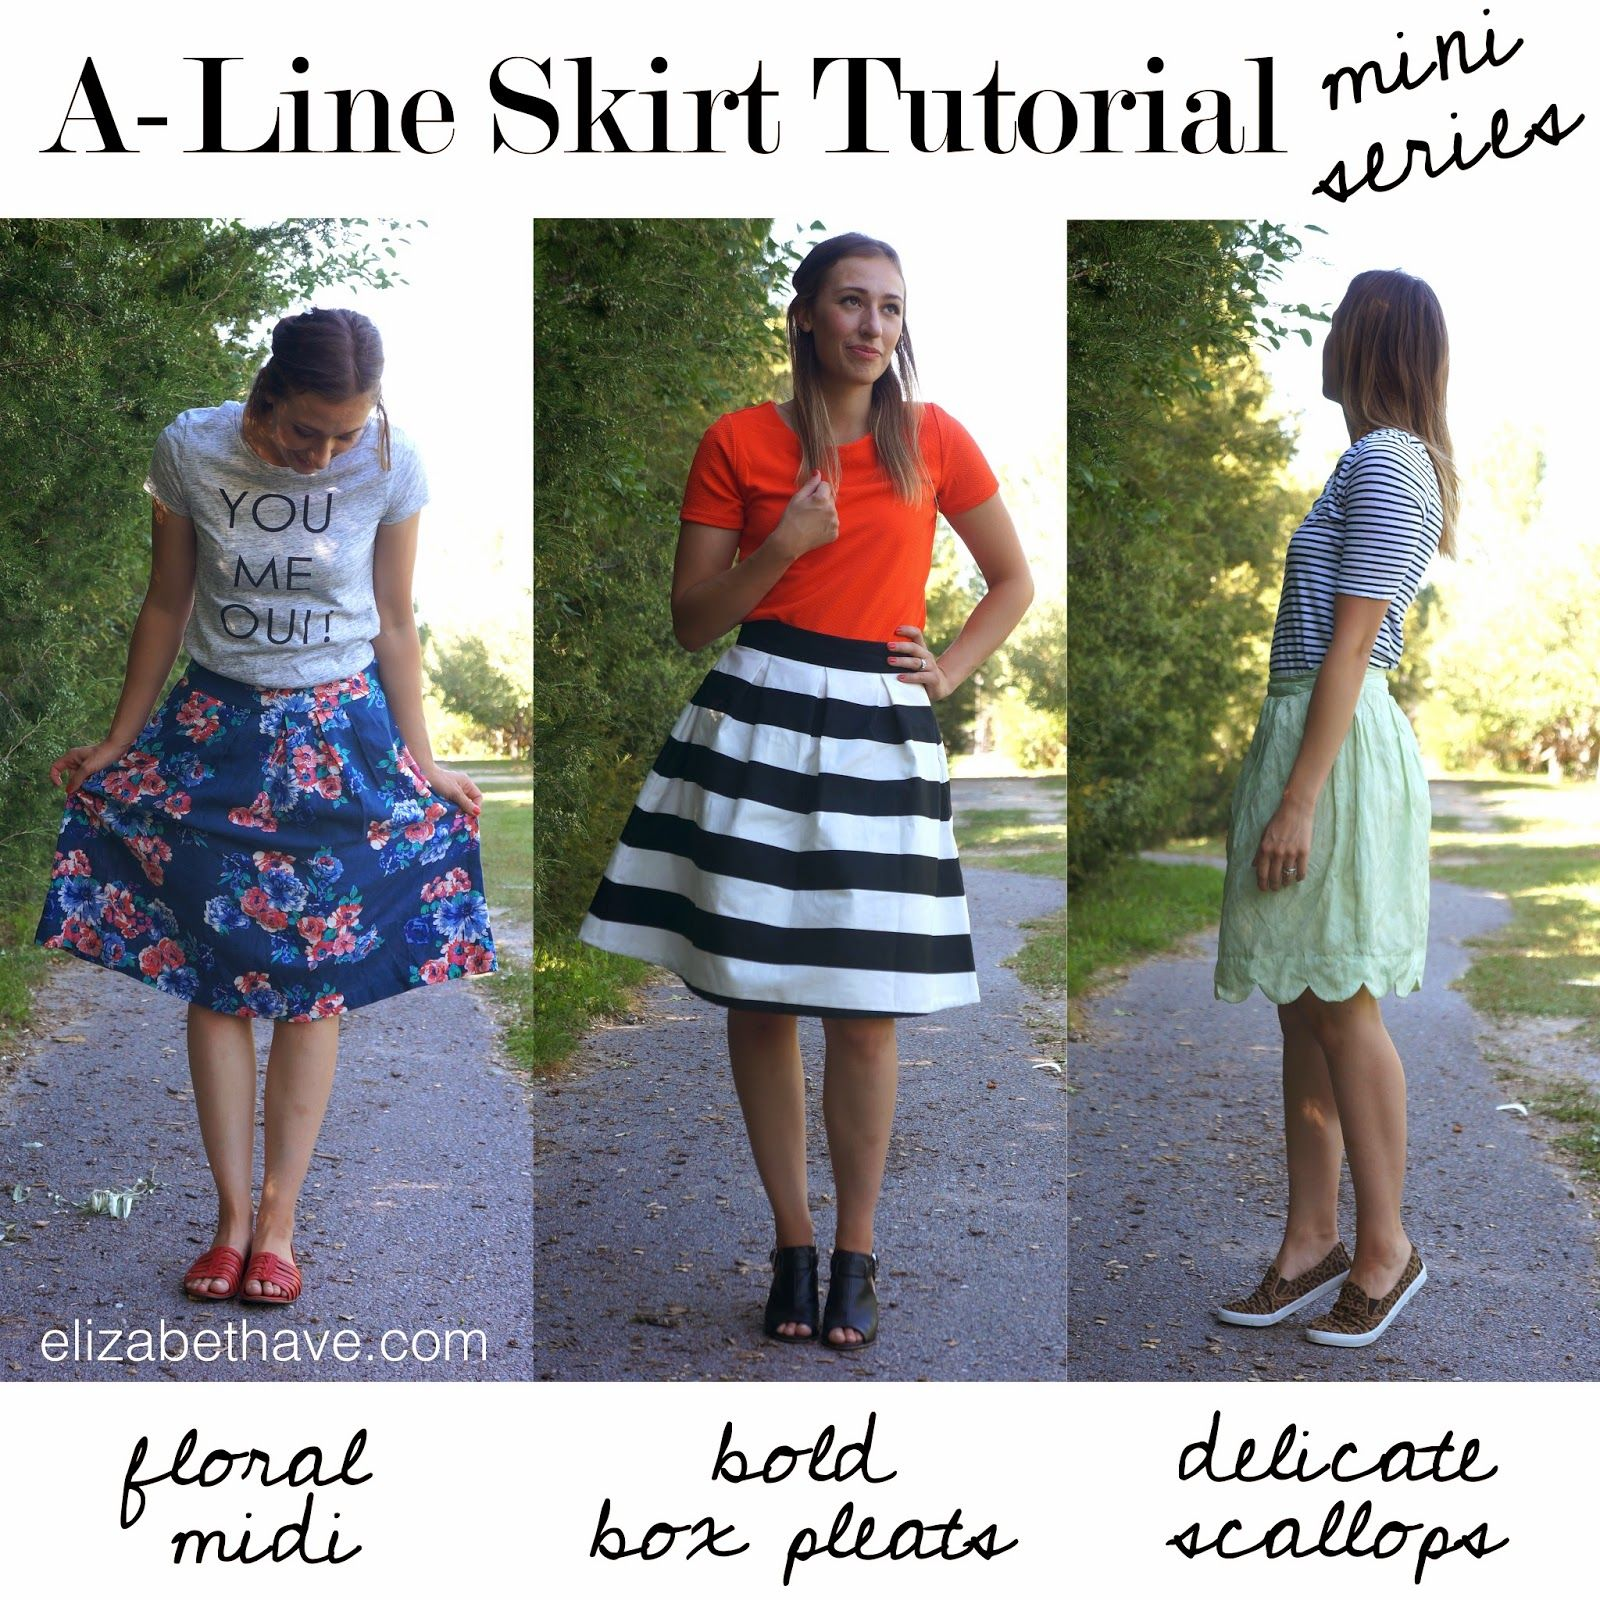 Elizabeth Avenue Blog: A-Line Skirt Series: Floral Midi Tutorial ...